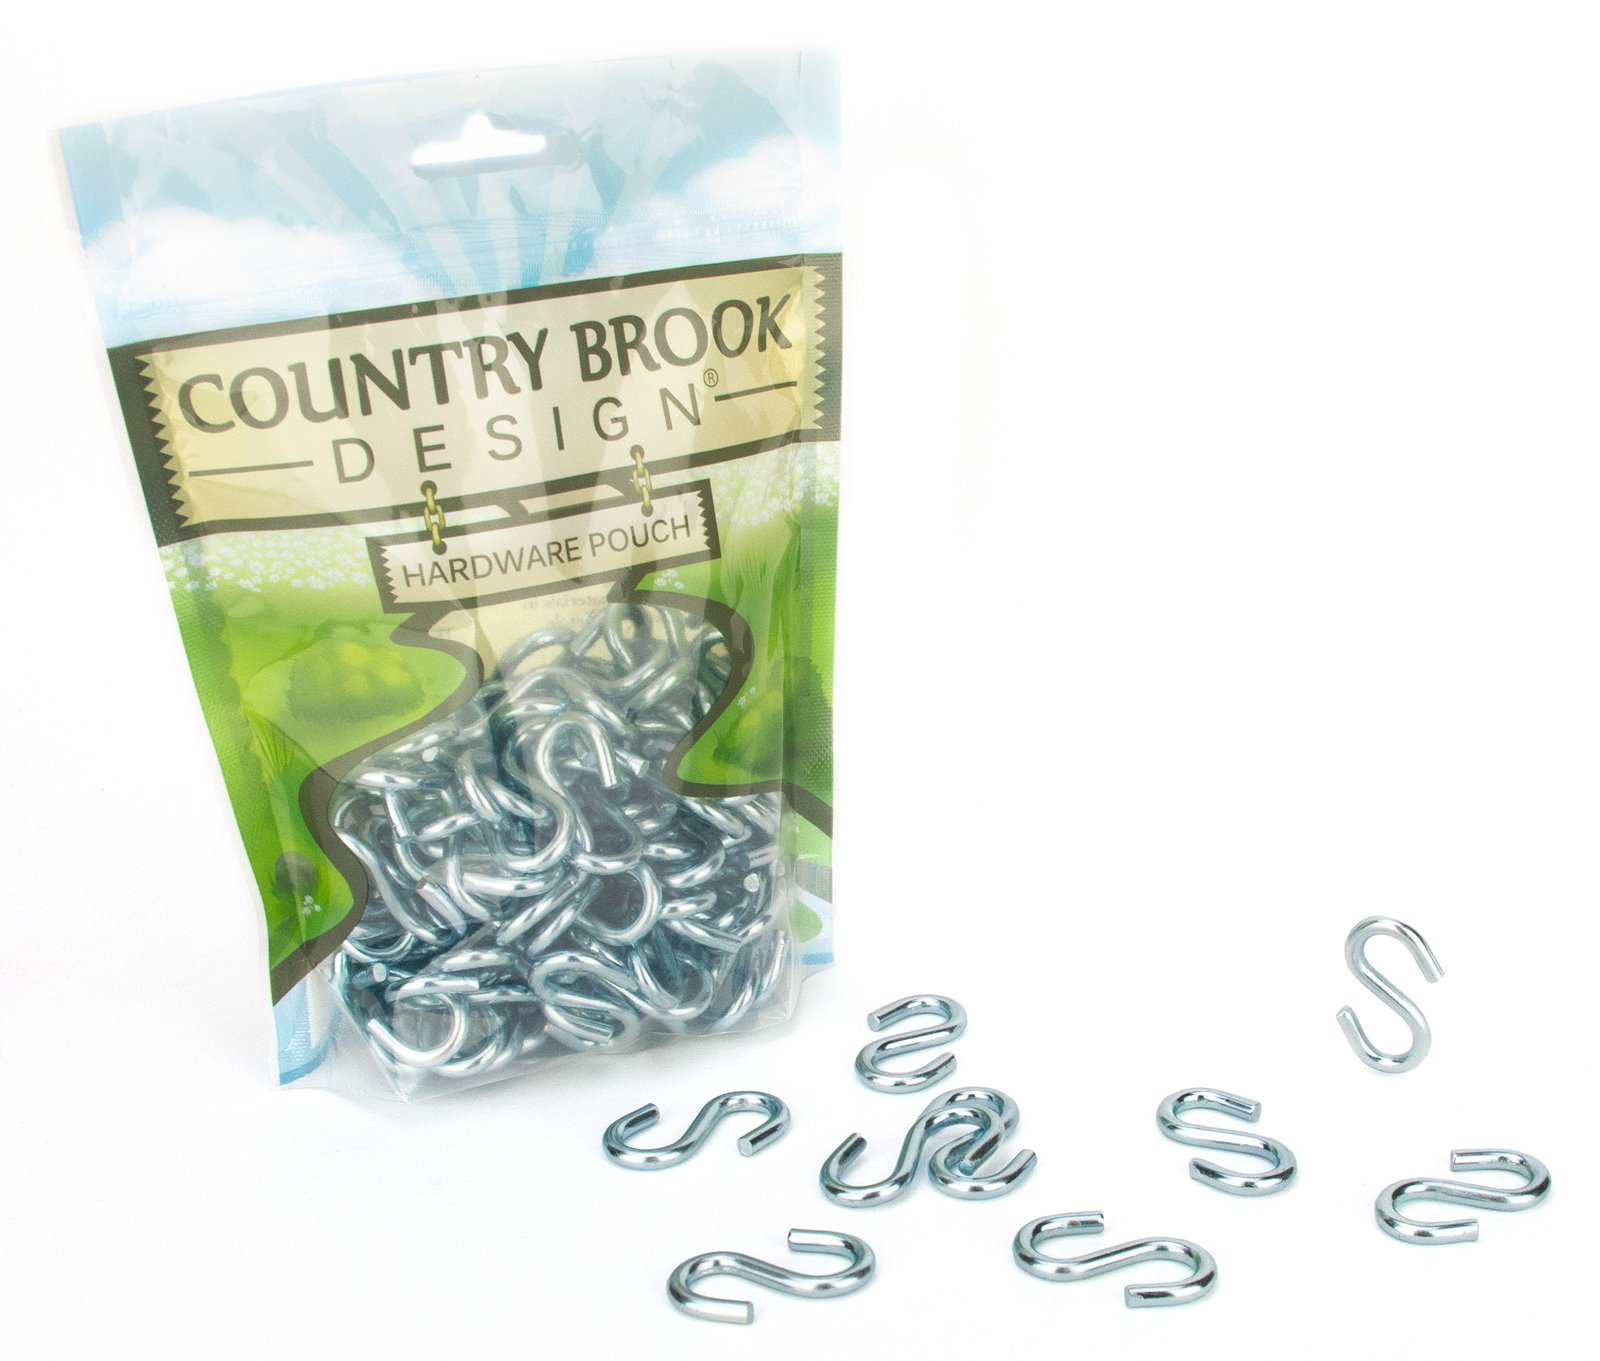 100 - Country Brook Design 1 3/8 Inch Steel S-Hooks